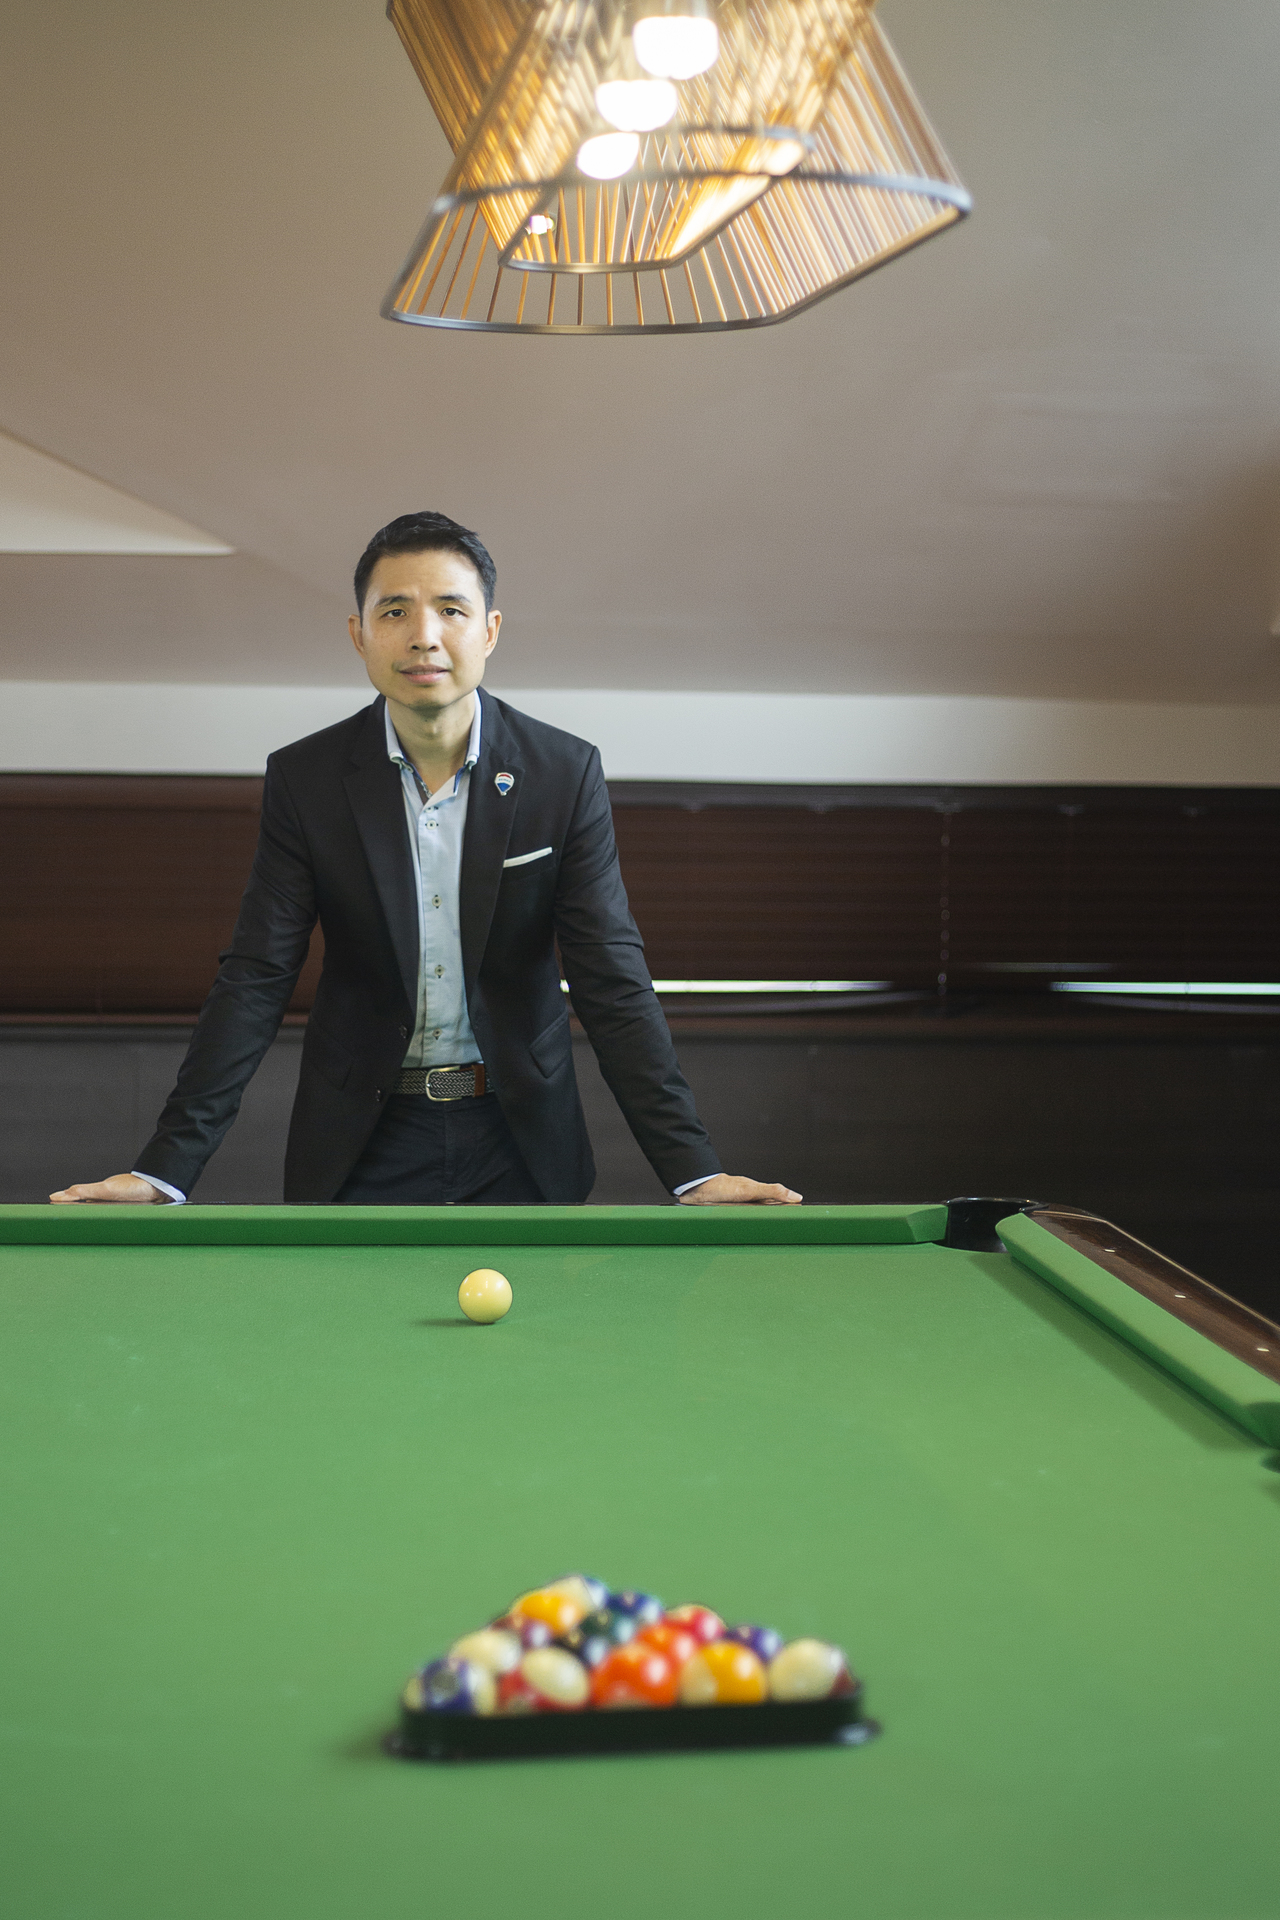 John Yu leaning over a billiards table